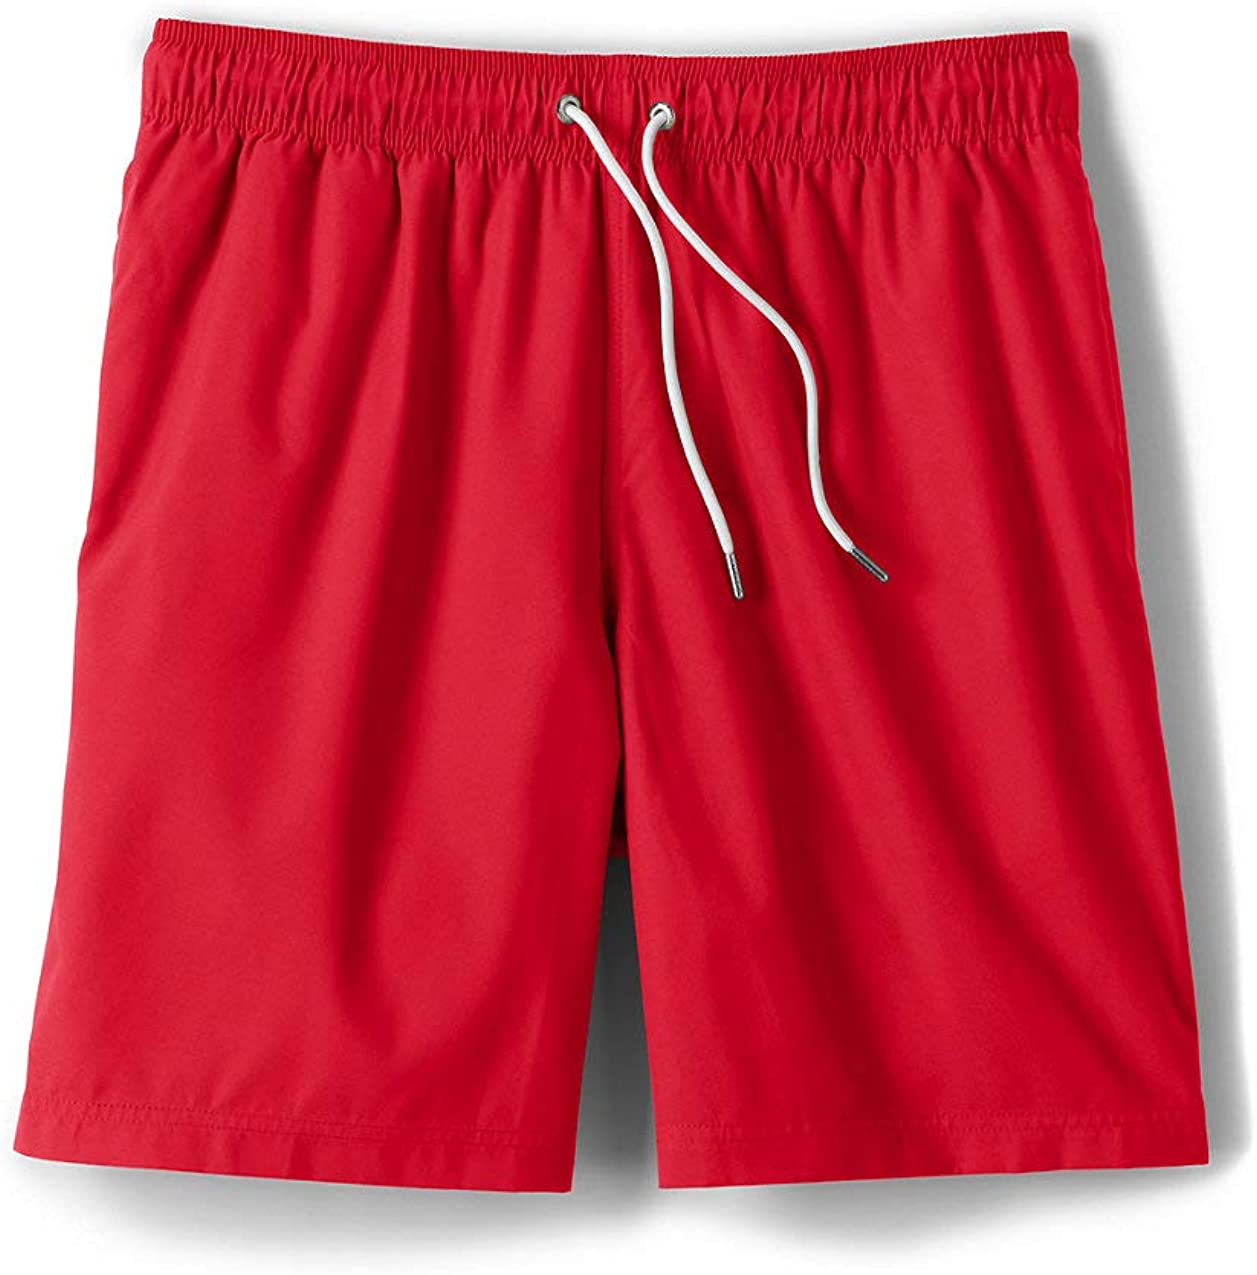 Lands' End Mens 8 Inch Volley Swim Trunk Compass Red Big and Tall 2XL